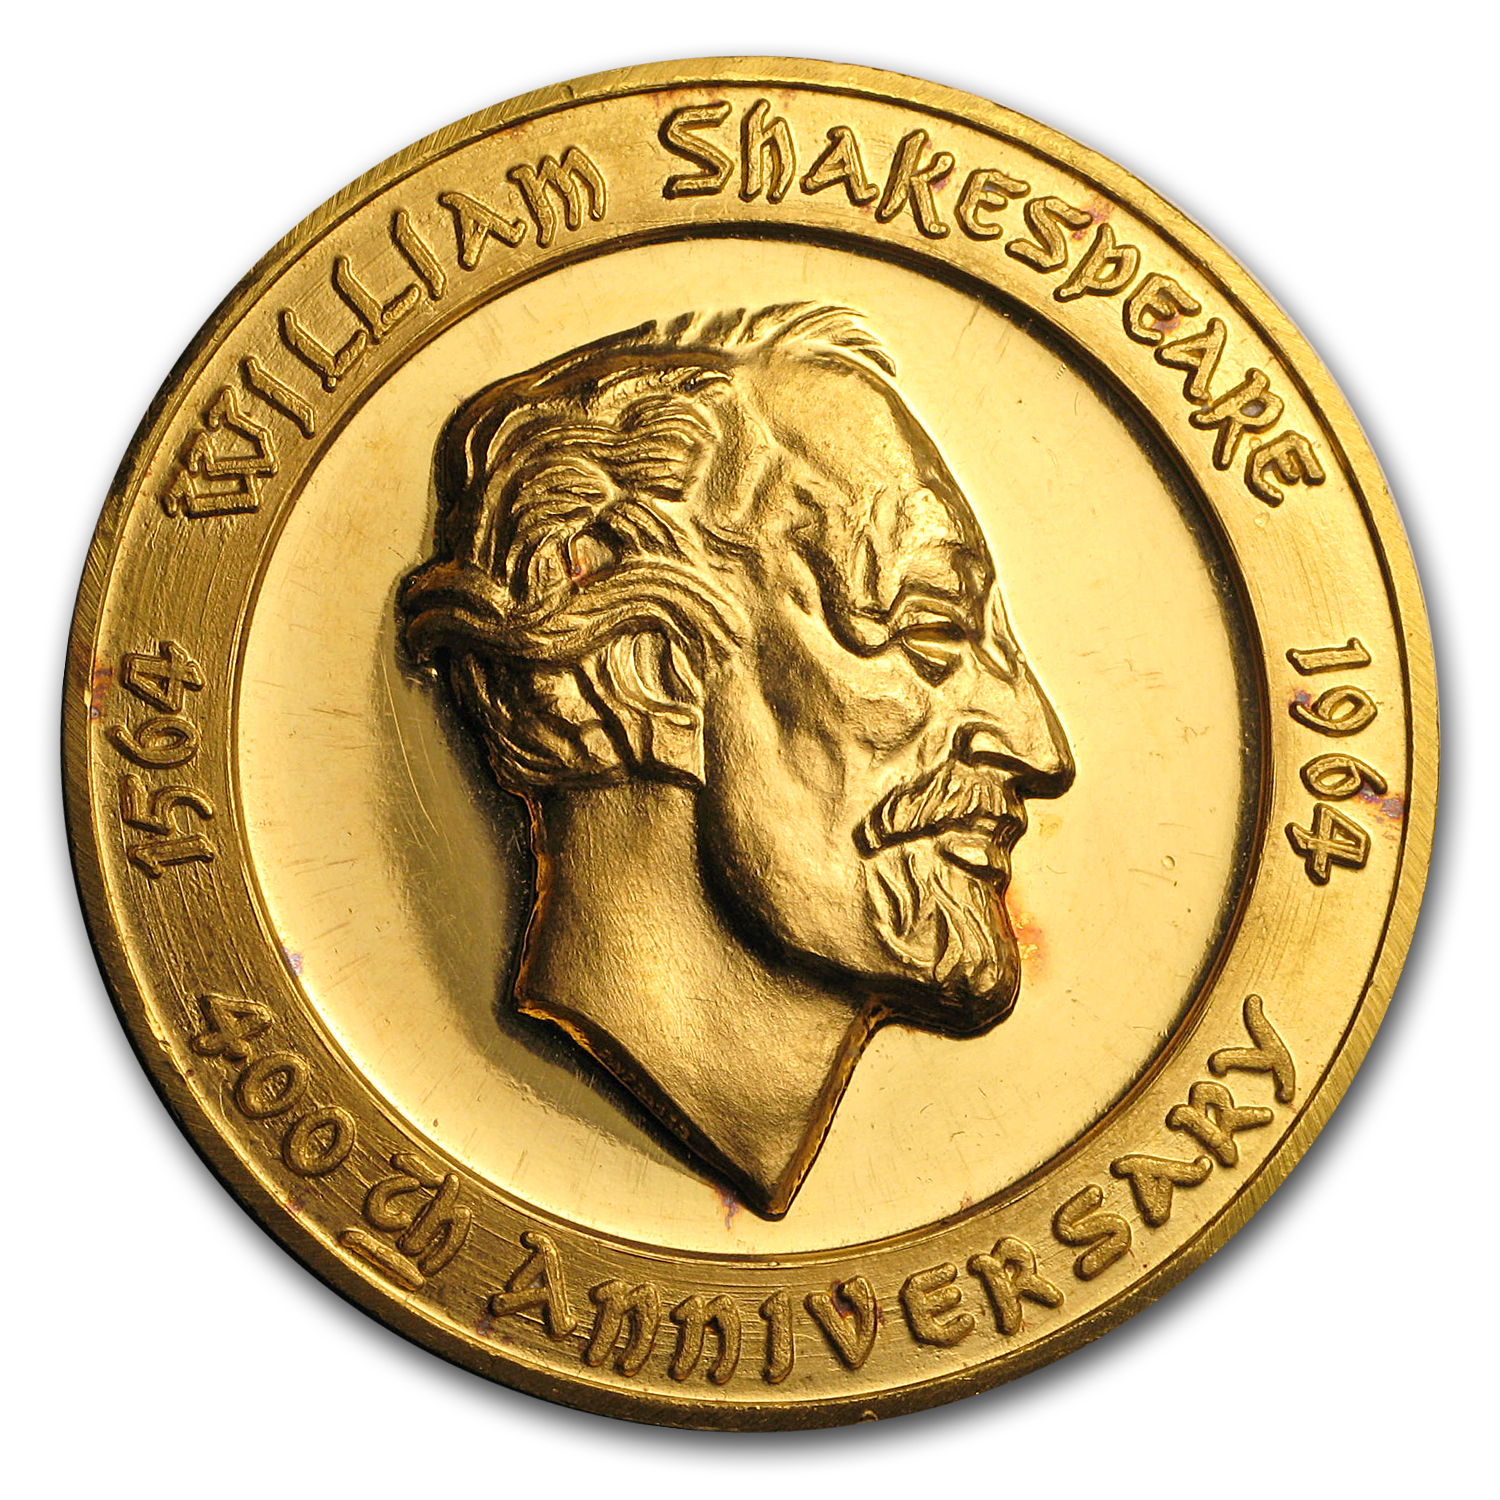 1964 Large Gold Medal: 400th Anniversary of Shakespeare's Birth